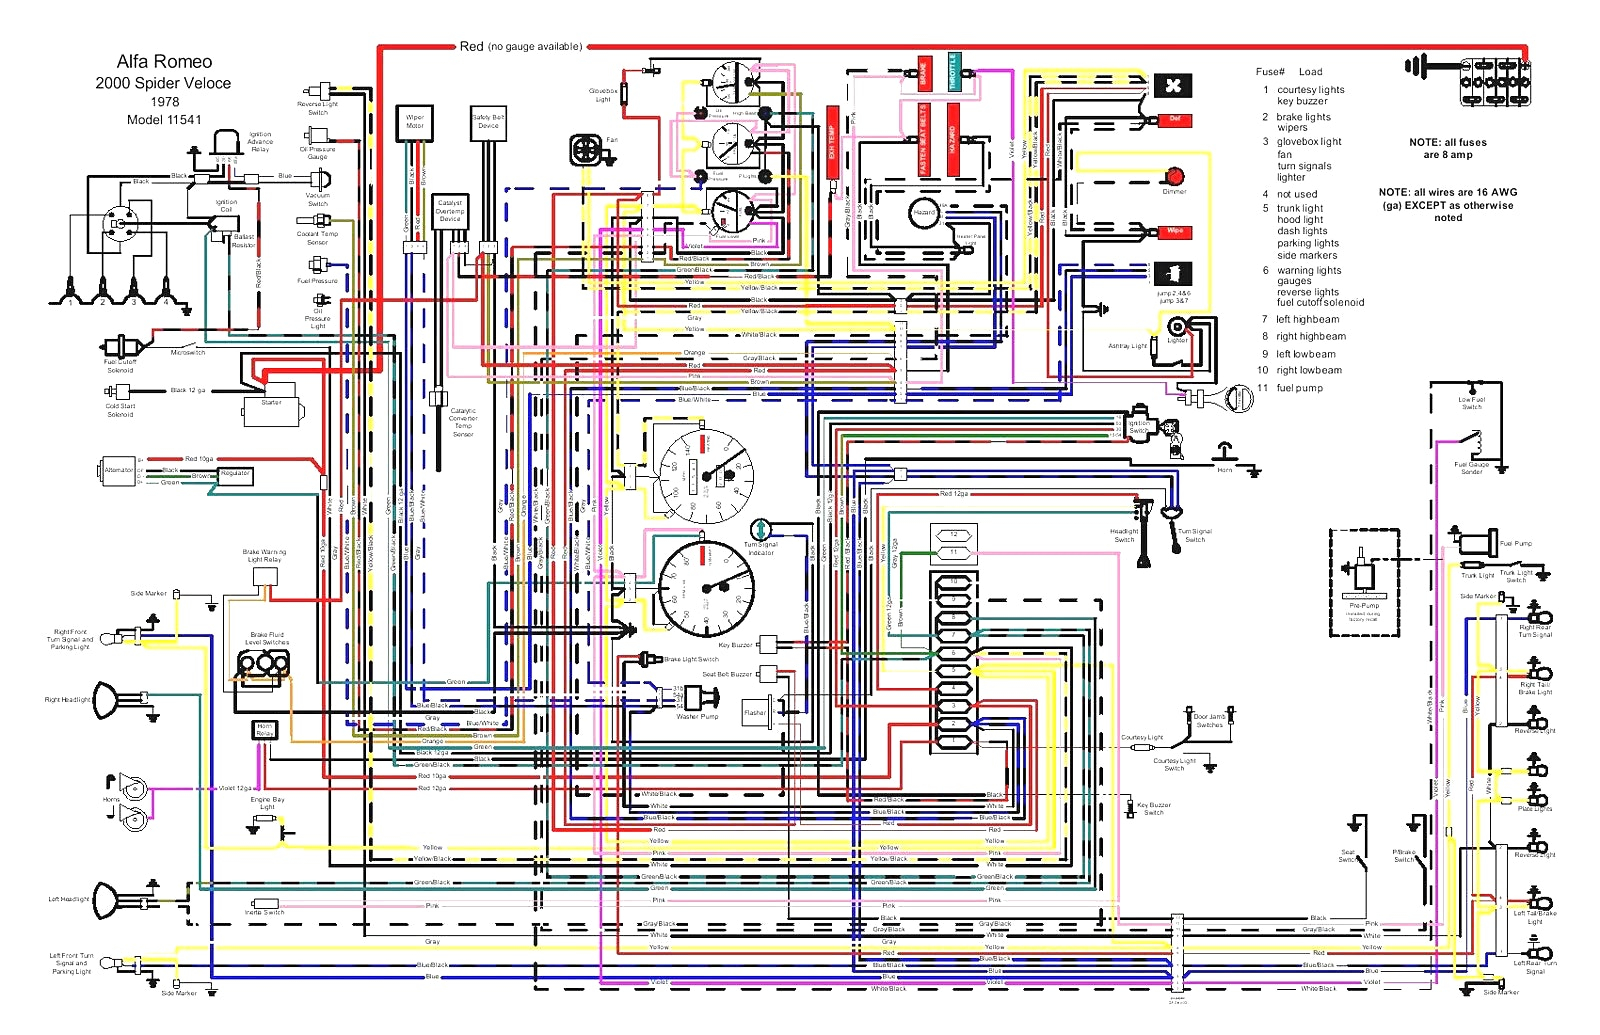 auto wiring diagram software Download-Automotive Wiring Diagram software Beautiful Diagrams Electrical and Tele Plan software Free Wiring Diagram 5-b